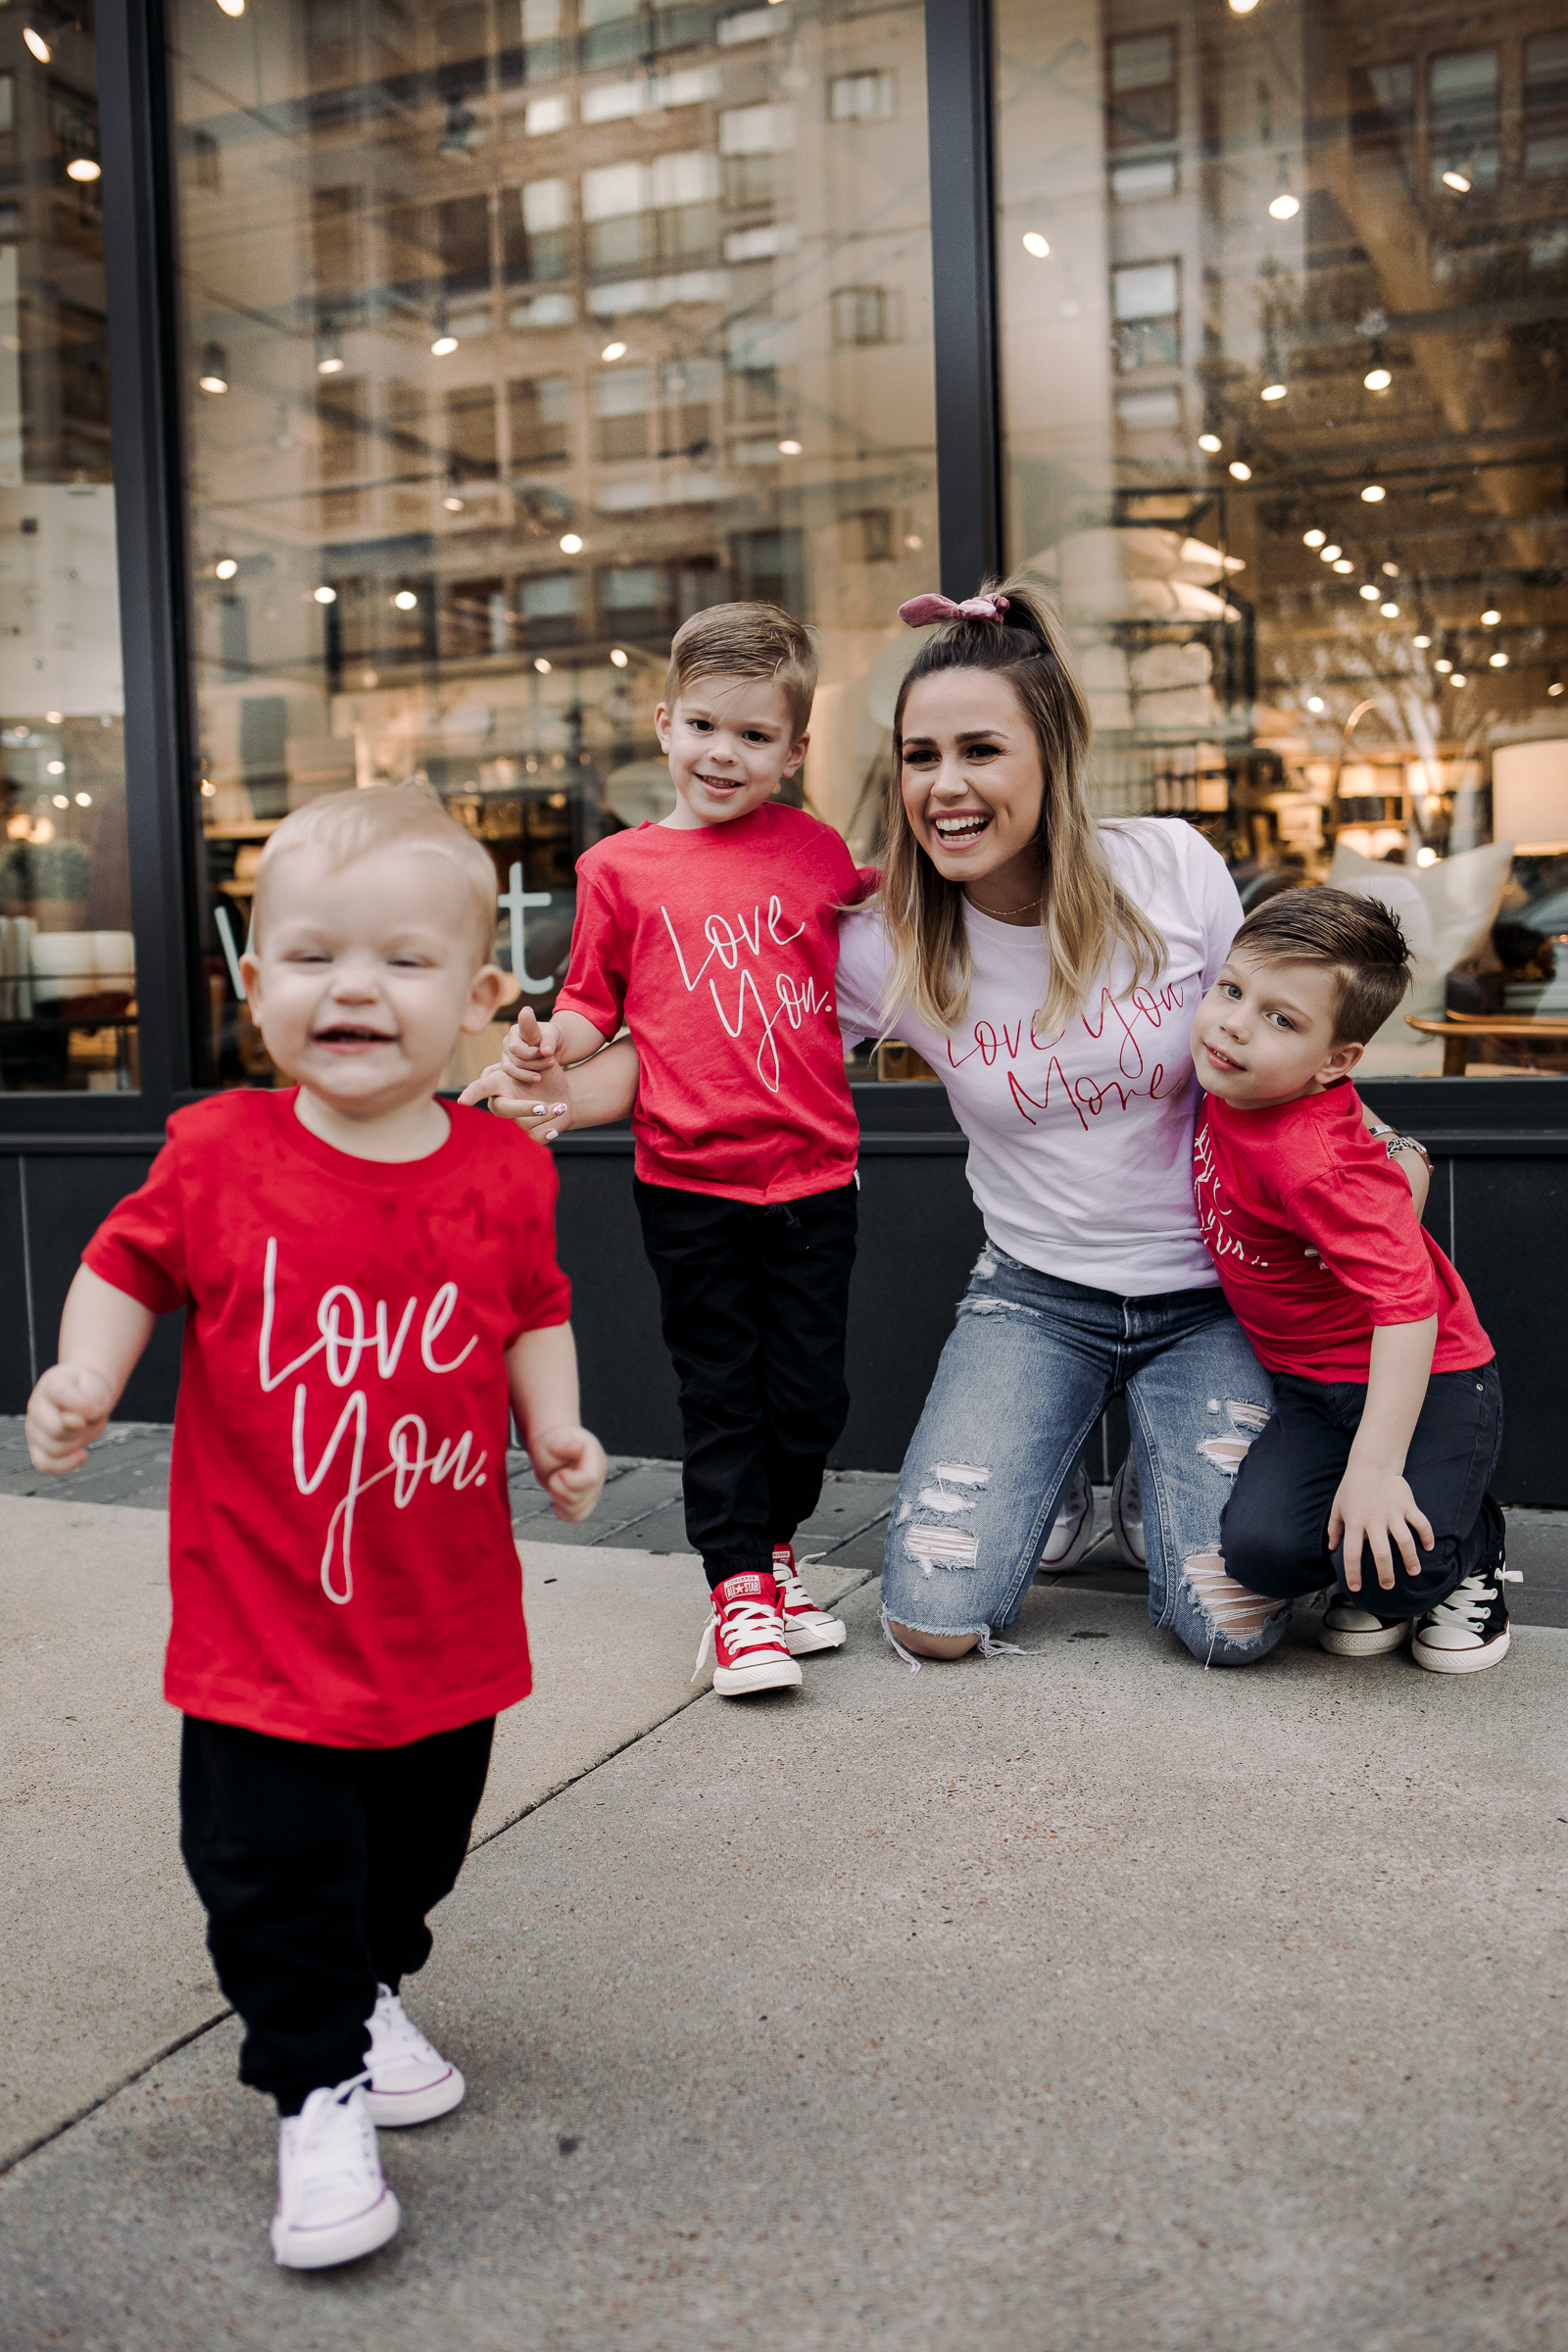 Houston fashion blogger Uptown with Elly Brown wears matching mom and son outfits